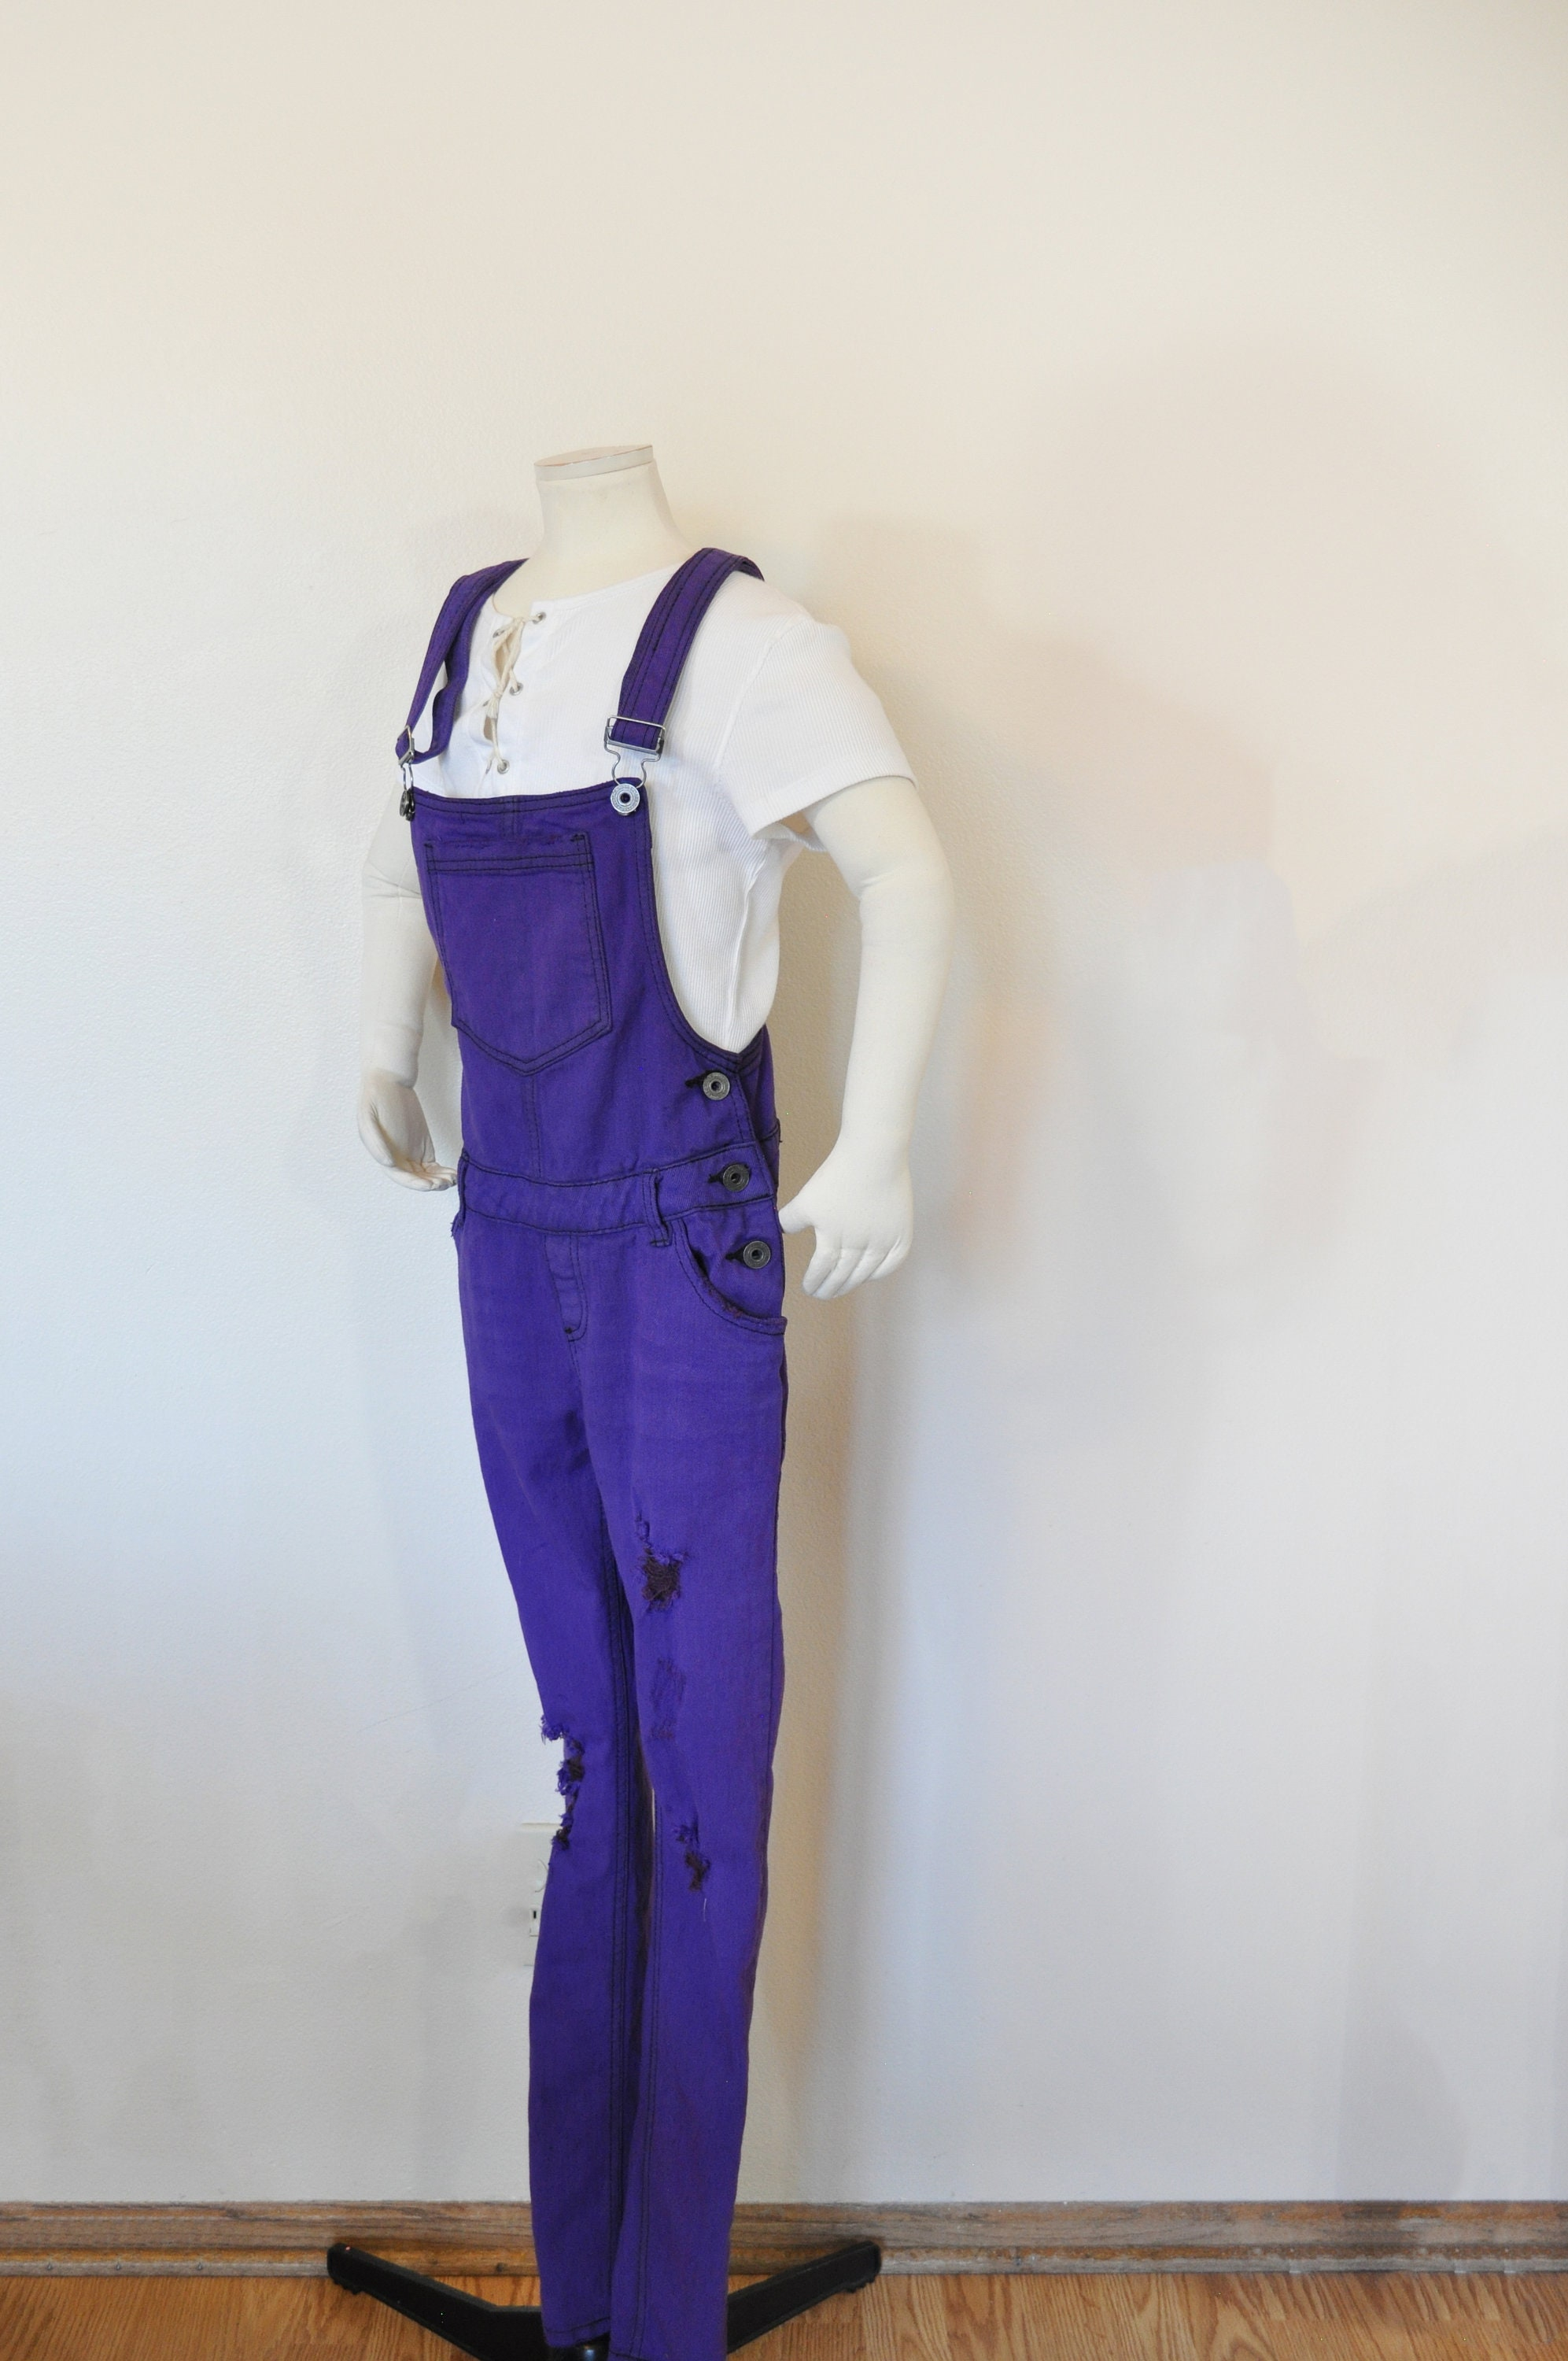 Vintage Overalls & Jumpsuits Purple Jrs Small Xs Bib Overall Pants - Violet Dyed Upcycled Denim  Co. Overall Adult Womens 2 Juniors Extra  28 W X 28 L $30.00 AT vintagedancer.com